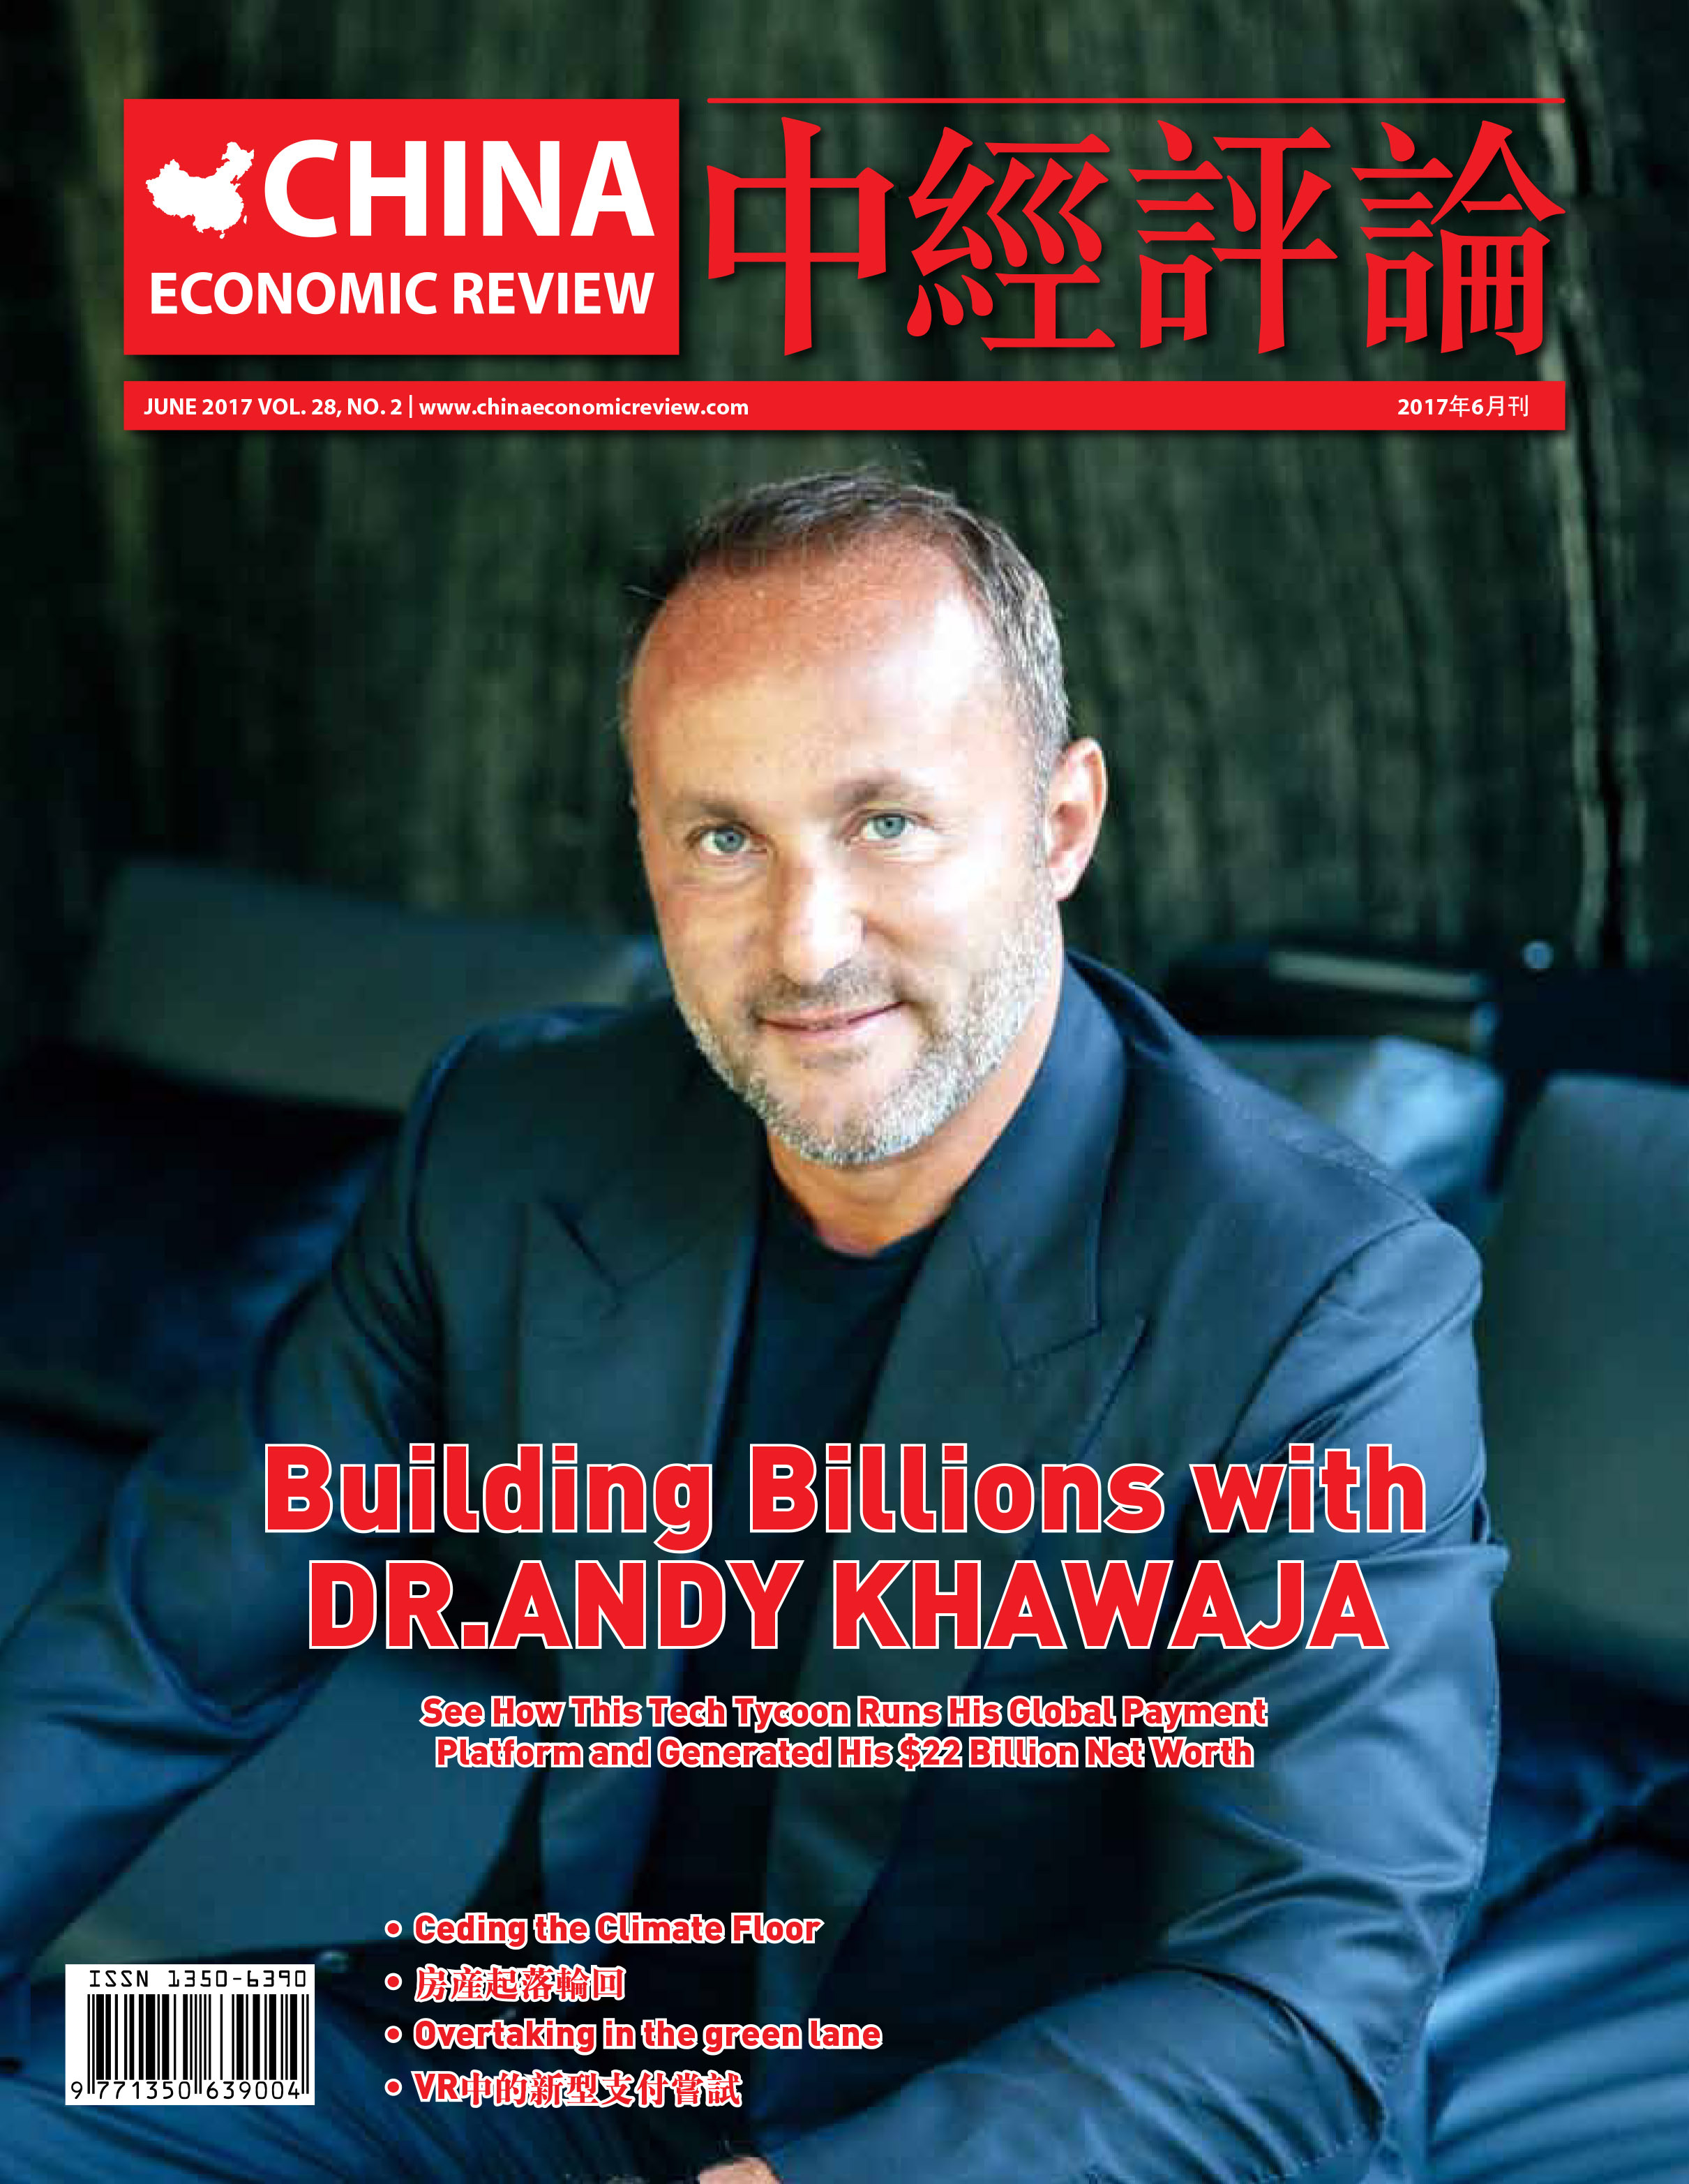 Dr. Andy Khawaja is featured on the cover of China Economic Review for his success with Allied Wallet in Asia. (Photo: Business Wire)